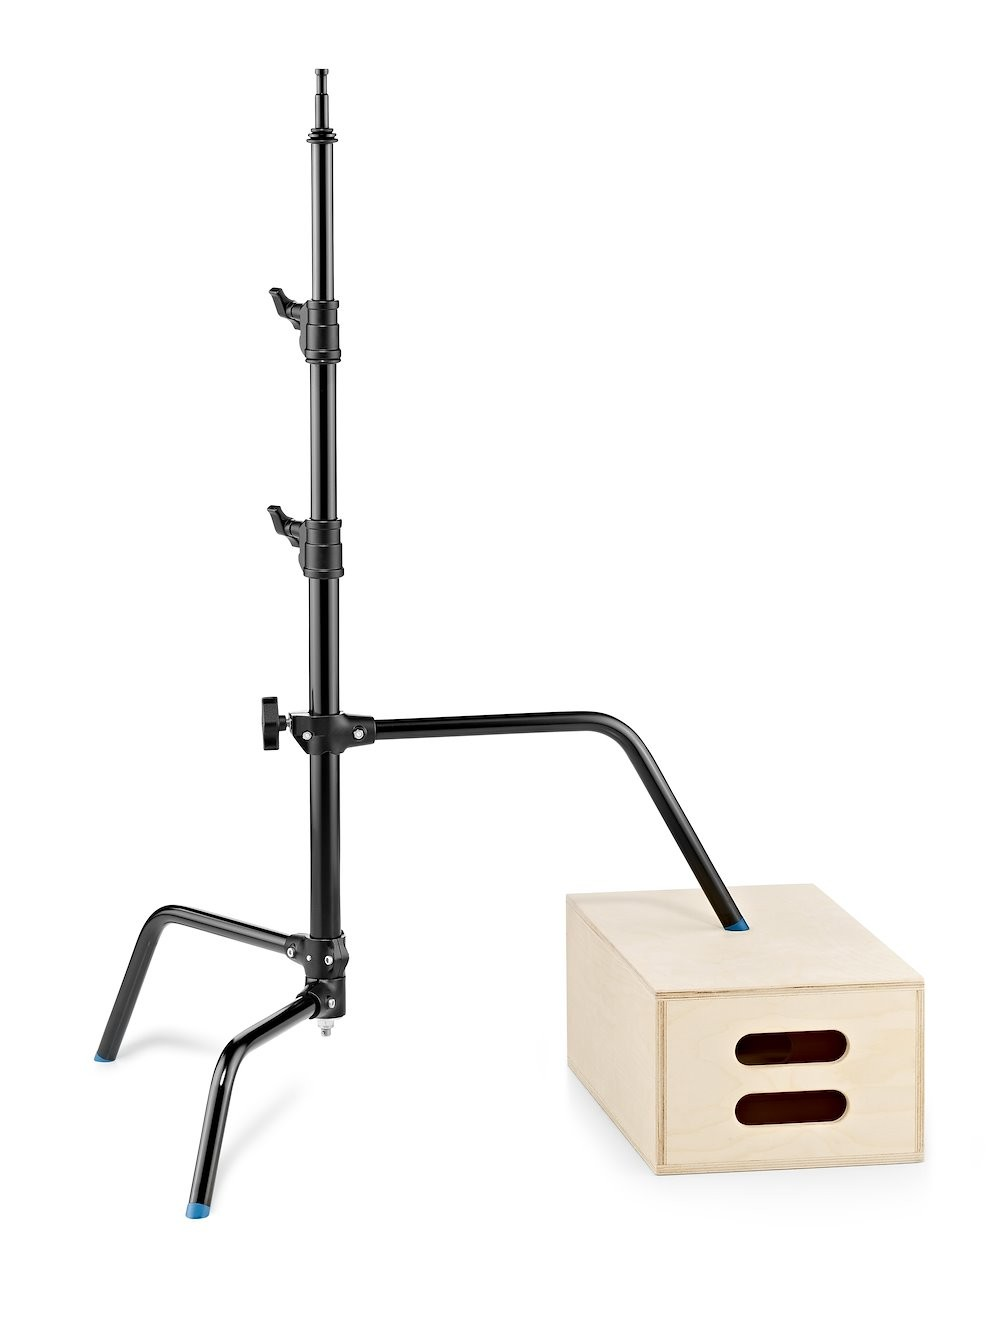 Light Stands & Grip Equipment. - Light stands, C stands, super clamps, grip arms sandbags and backdrop supports from all kinds of brands are of interest.